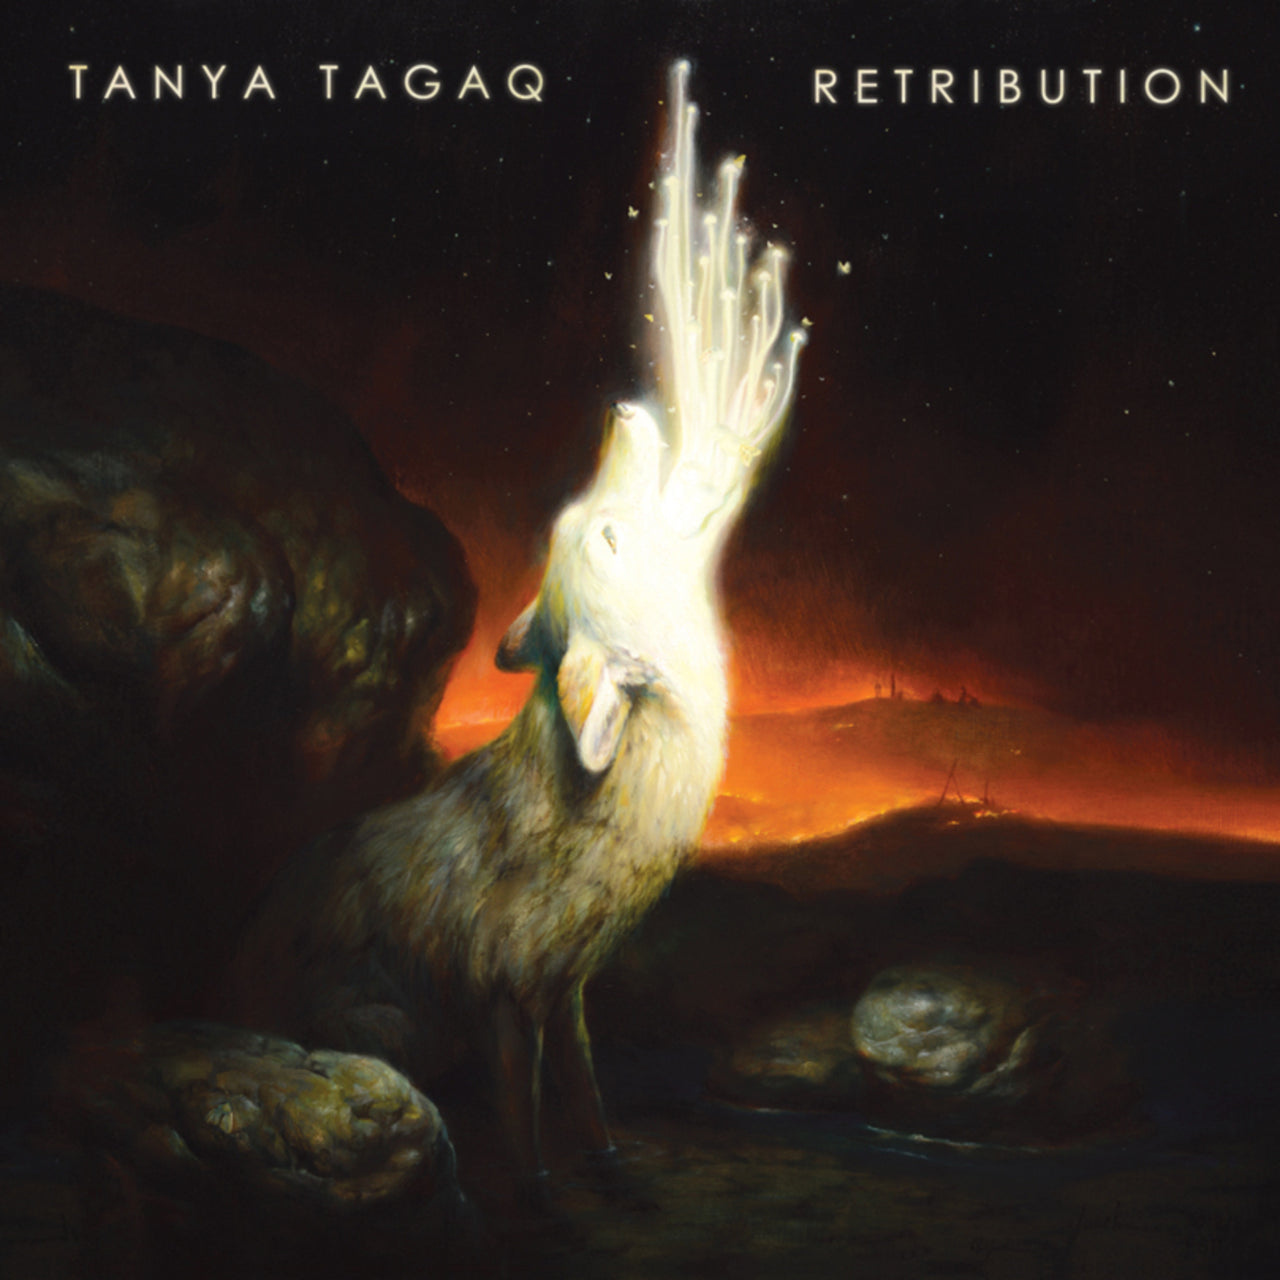 Tagaq, Tanya : Retribution  CD